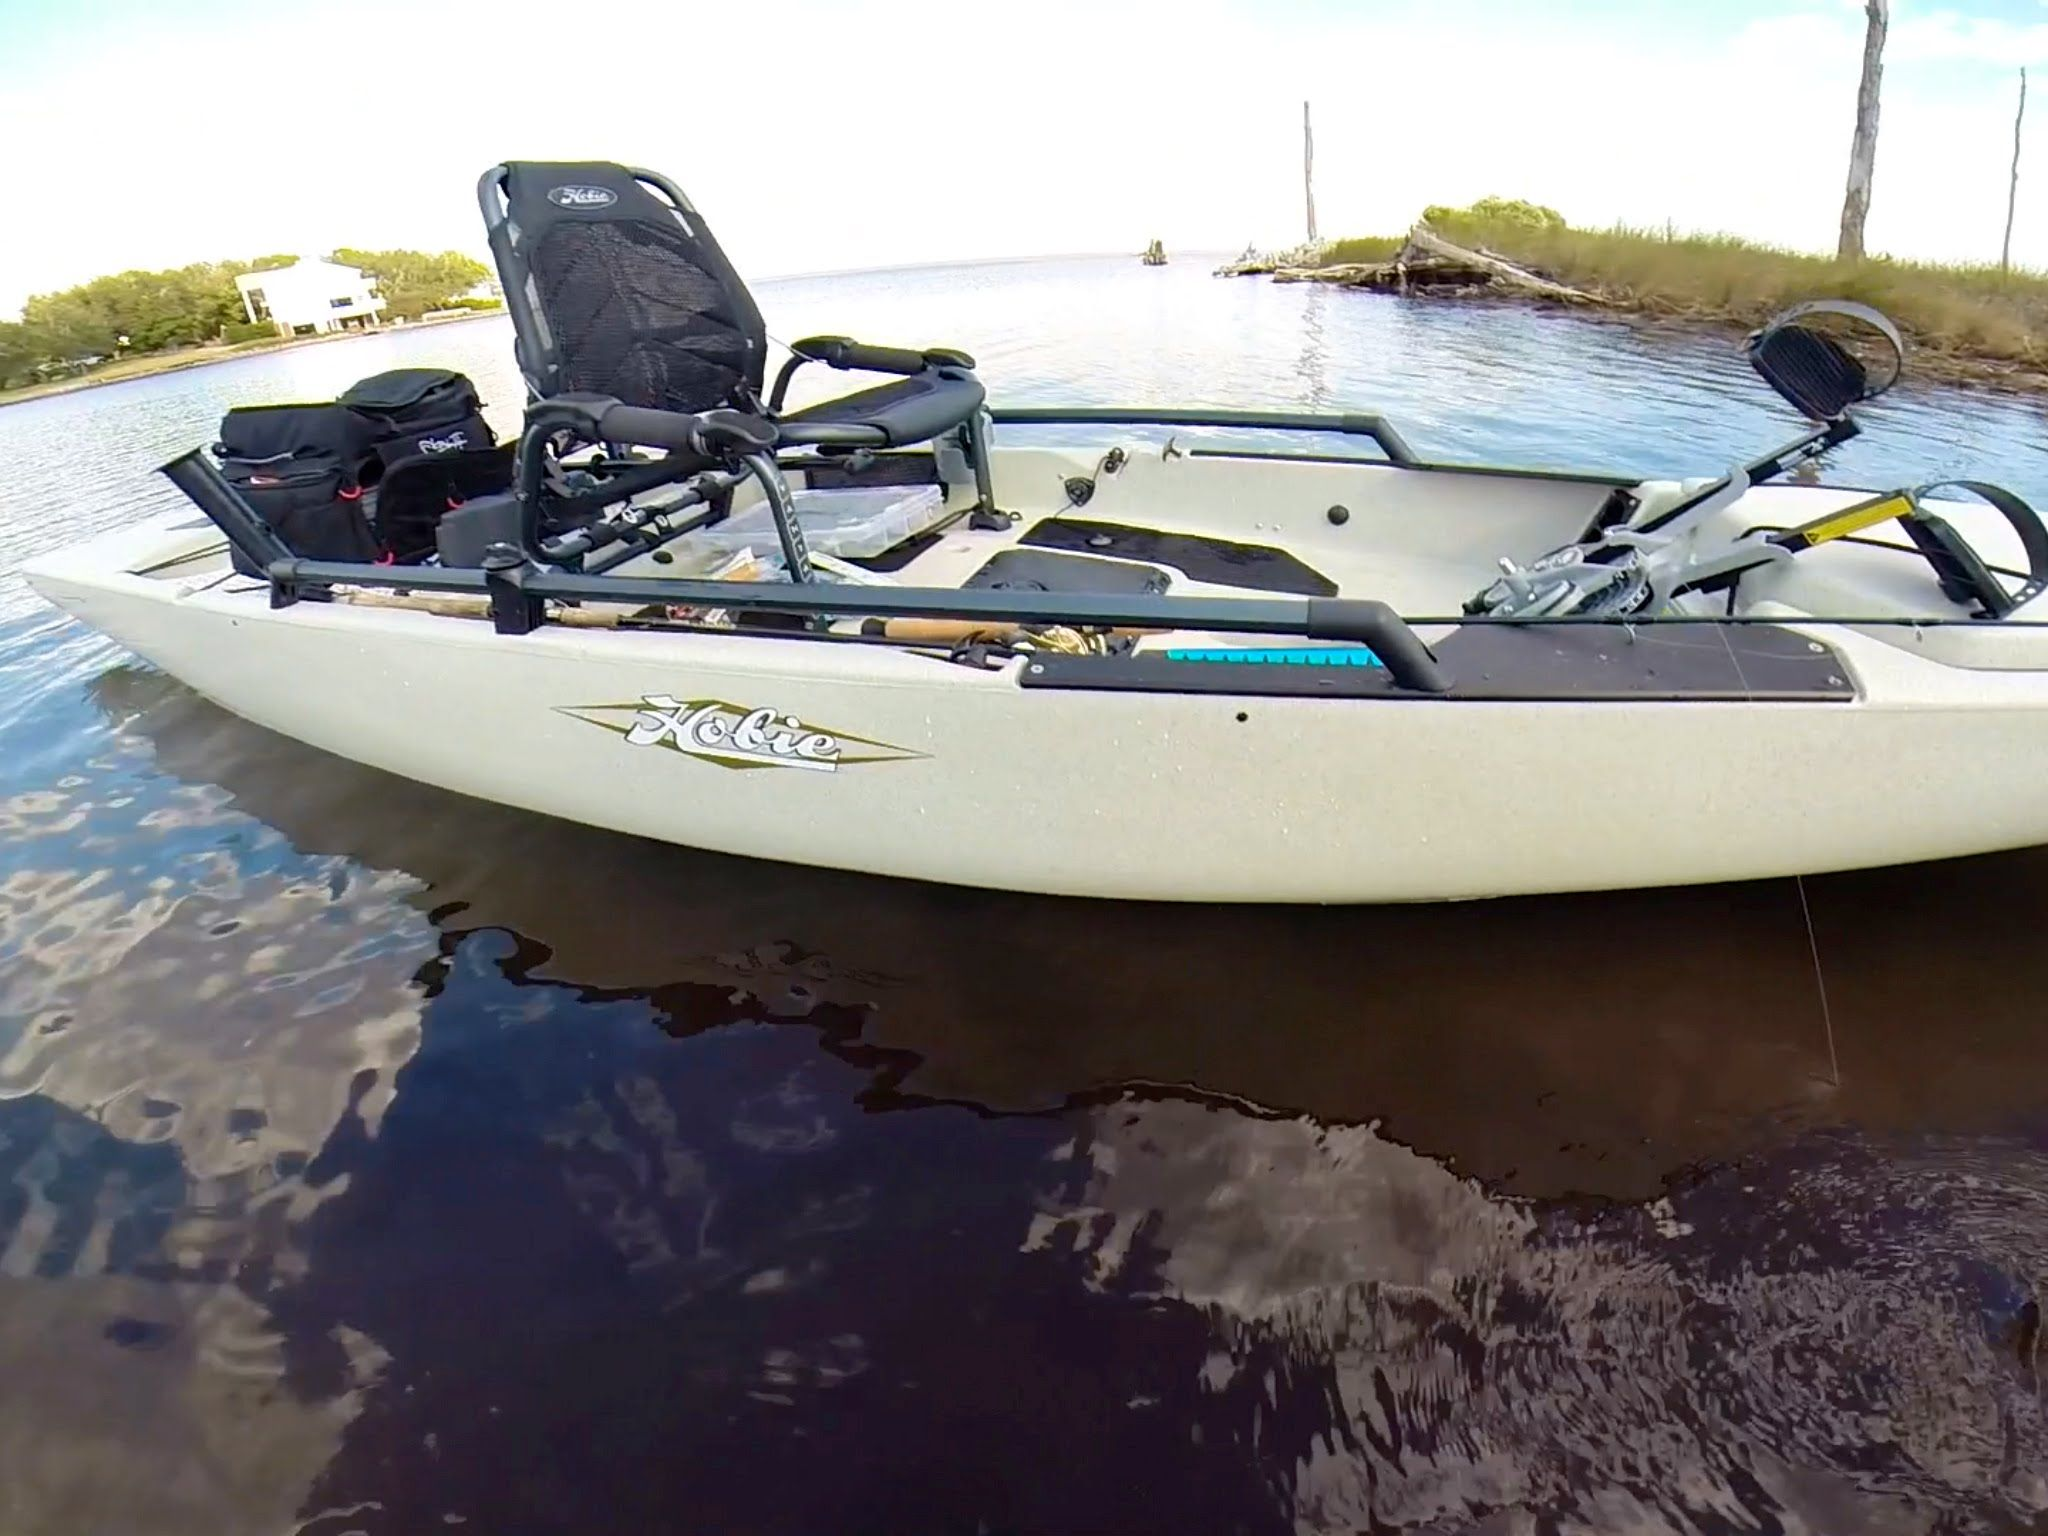 M mckenzie for cash back at bass pro shops and other for Bass pro shop fishing kayaks